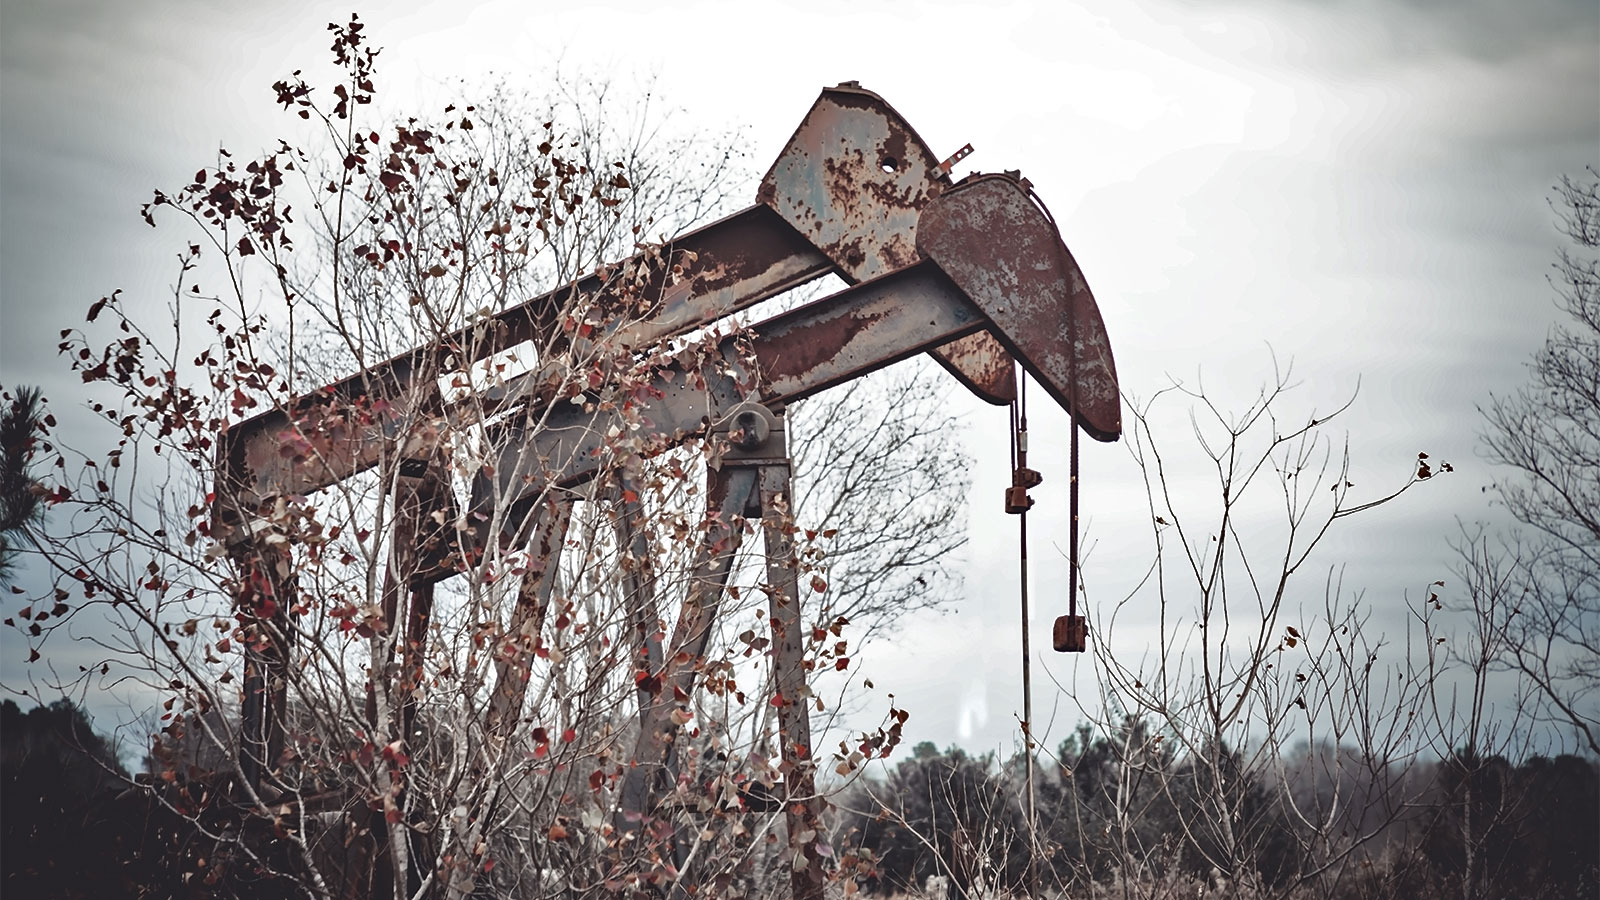 A photograph of rusty abandoned oil pumps in rural Texas.